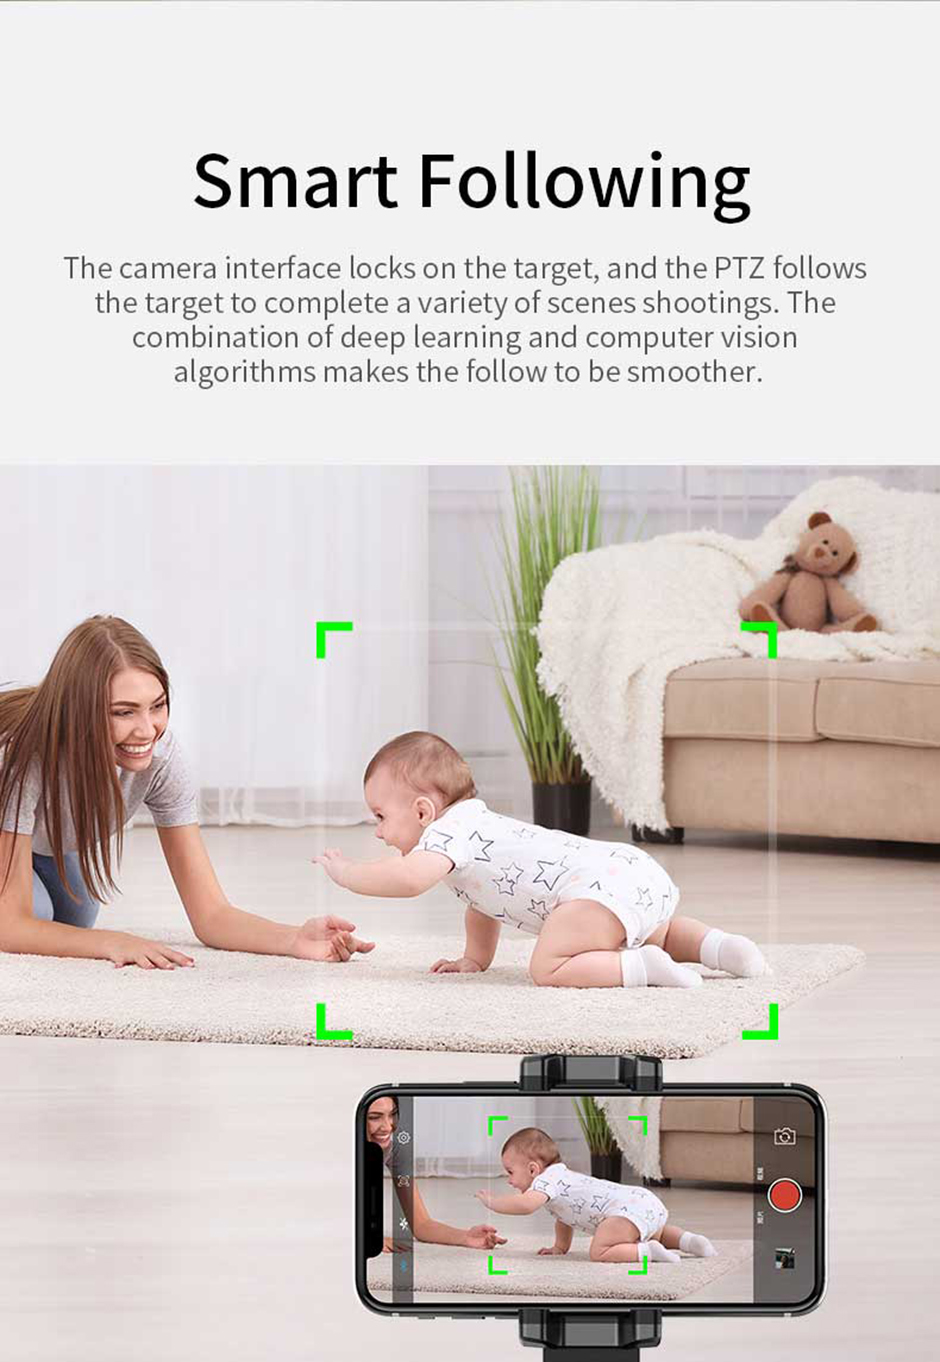 Hot Sale Live Artifact Auto 360 intelligent follow-up camera, object tracking, face recognition, APP control Mobile phone holder 4